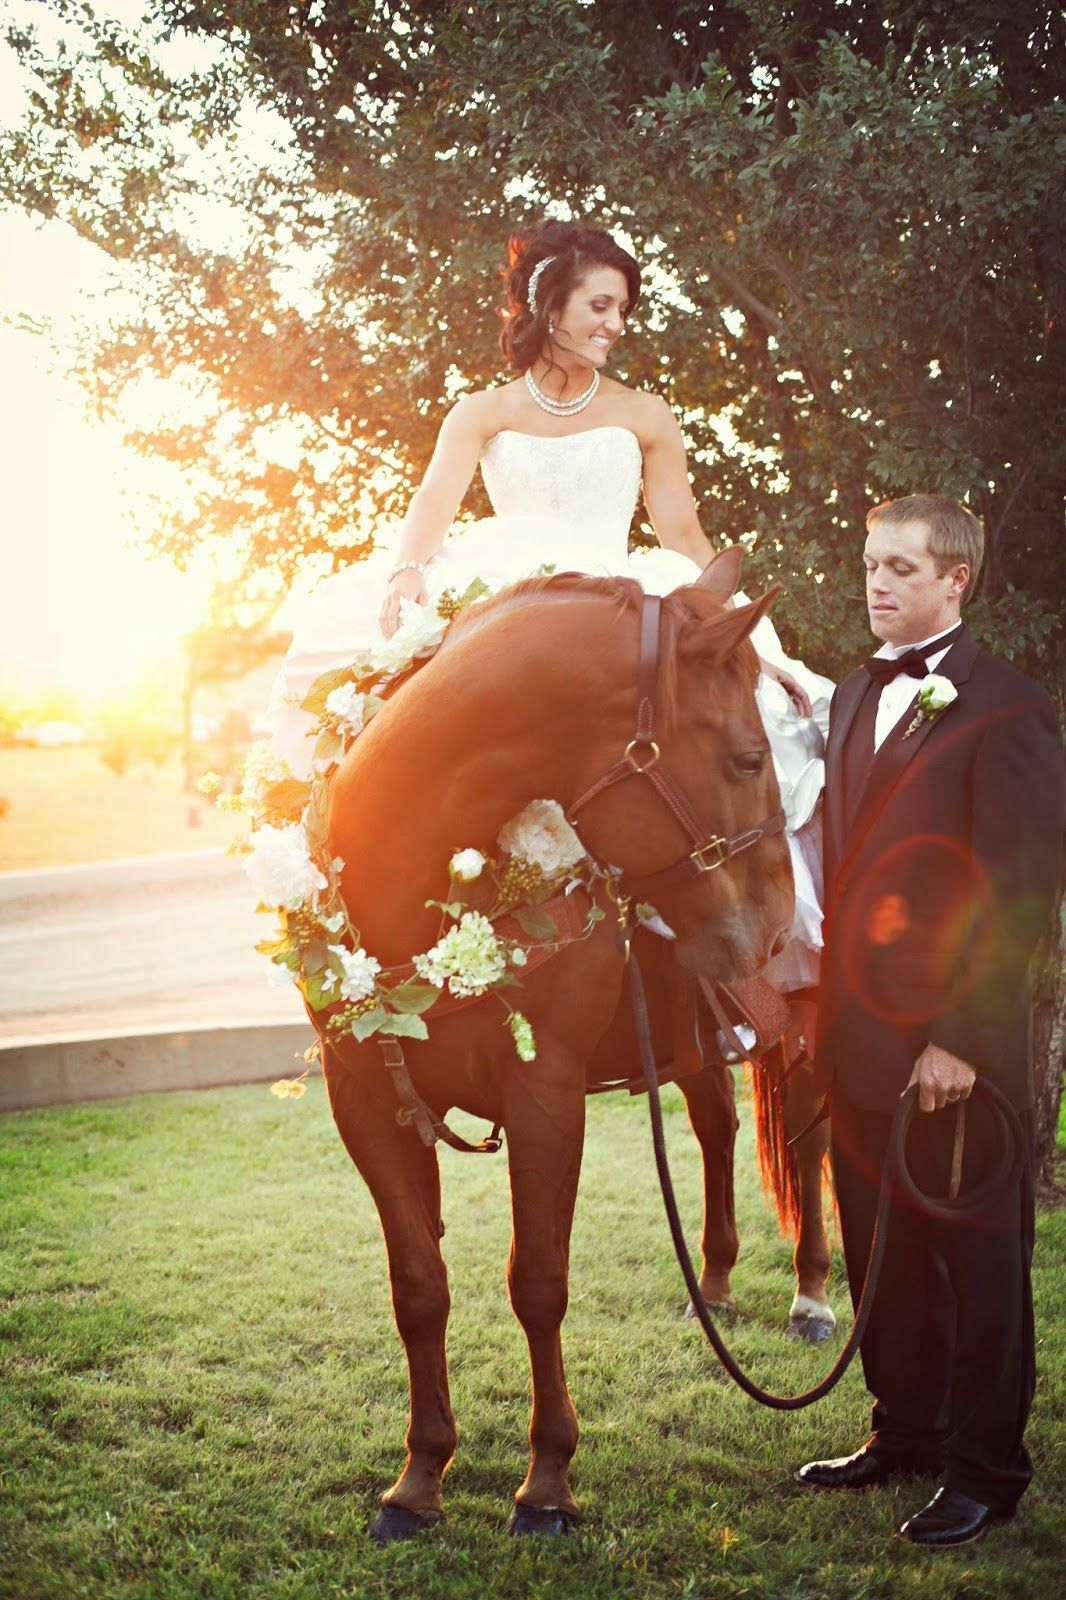 We had the true pleasure of being a part of this awesome celebration of love at one of Oklahoma's Centennial Ranches- the Vantine-Landess R...